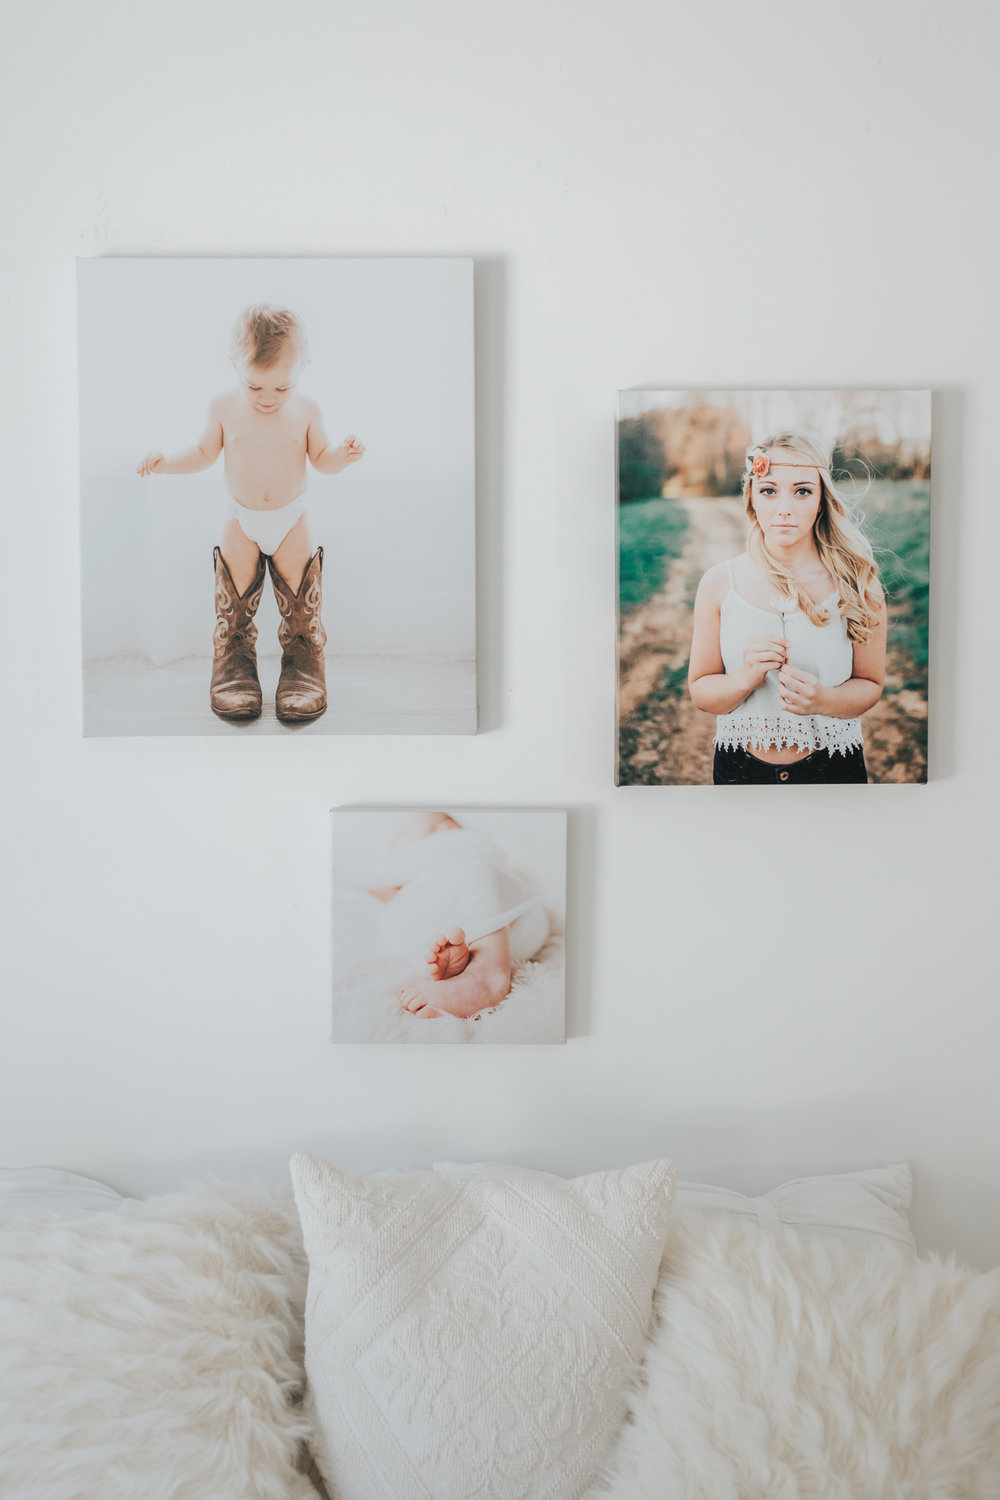 Gallery Canvas   Upgrade to 20x24 for $150  Upgrade to 24x36 for $250